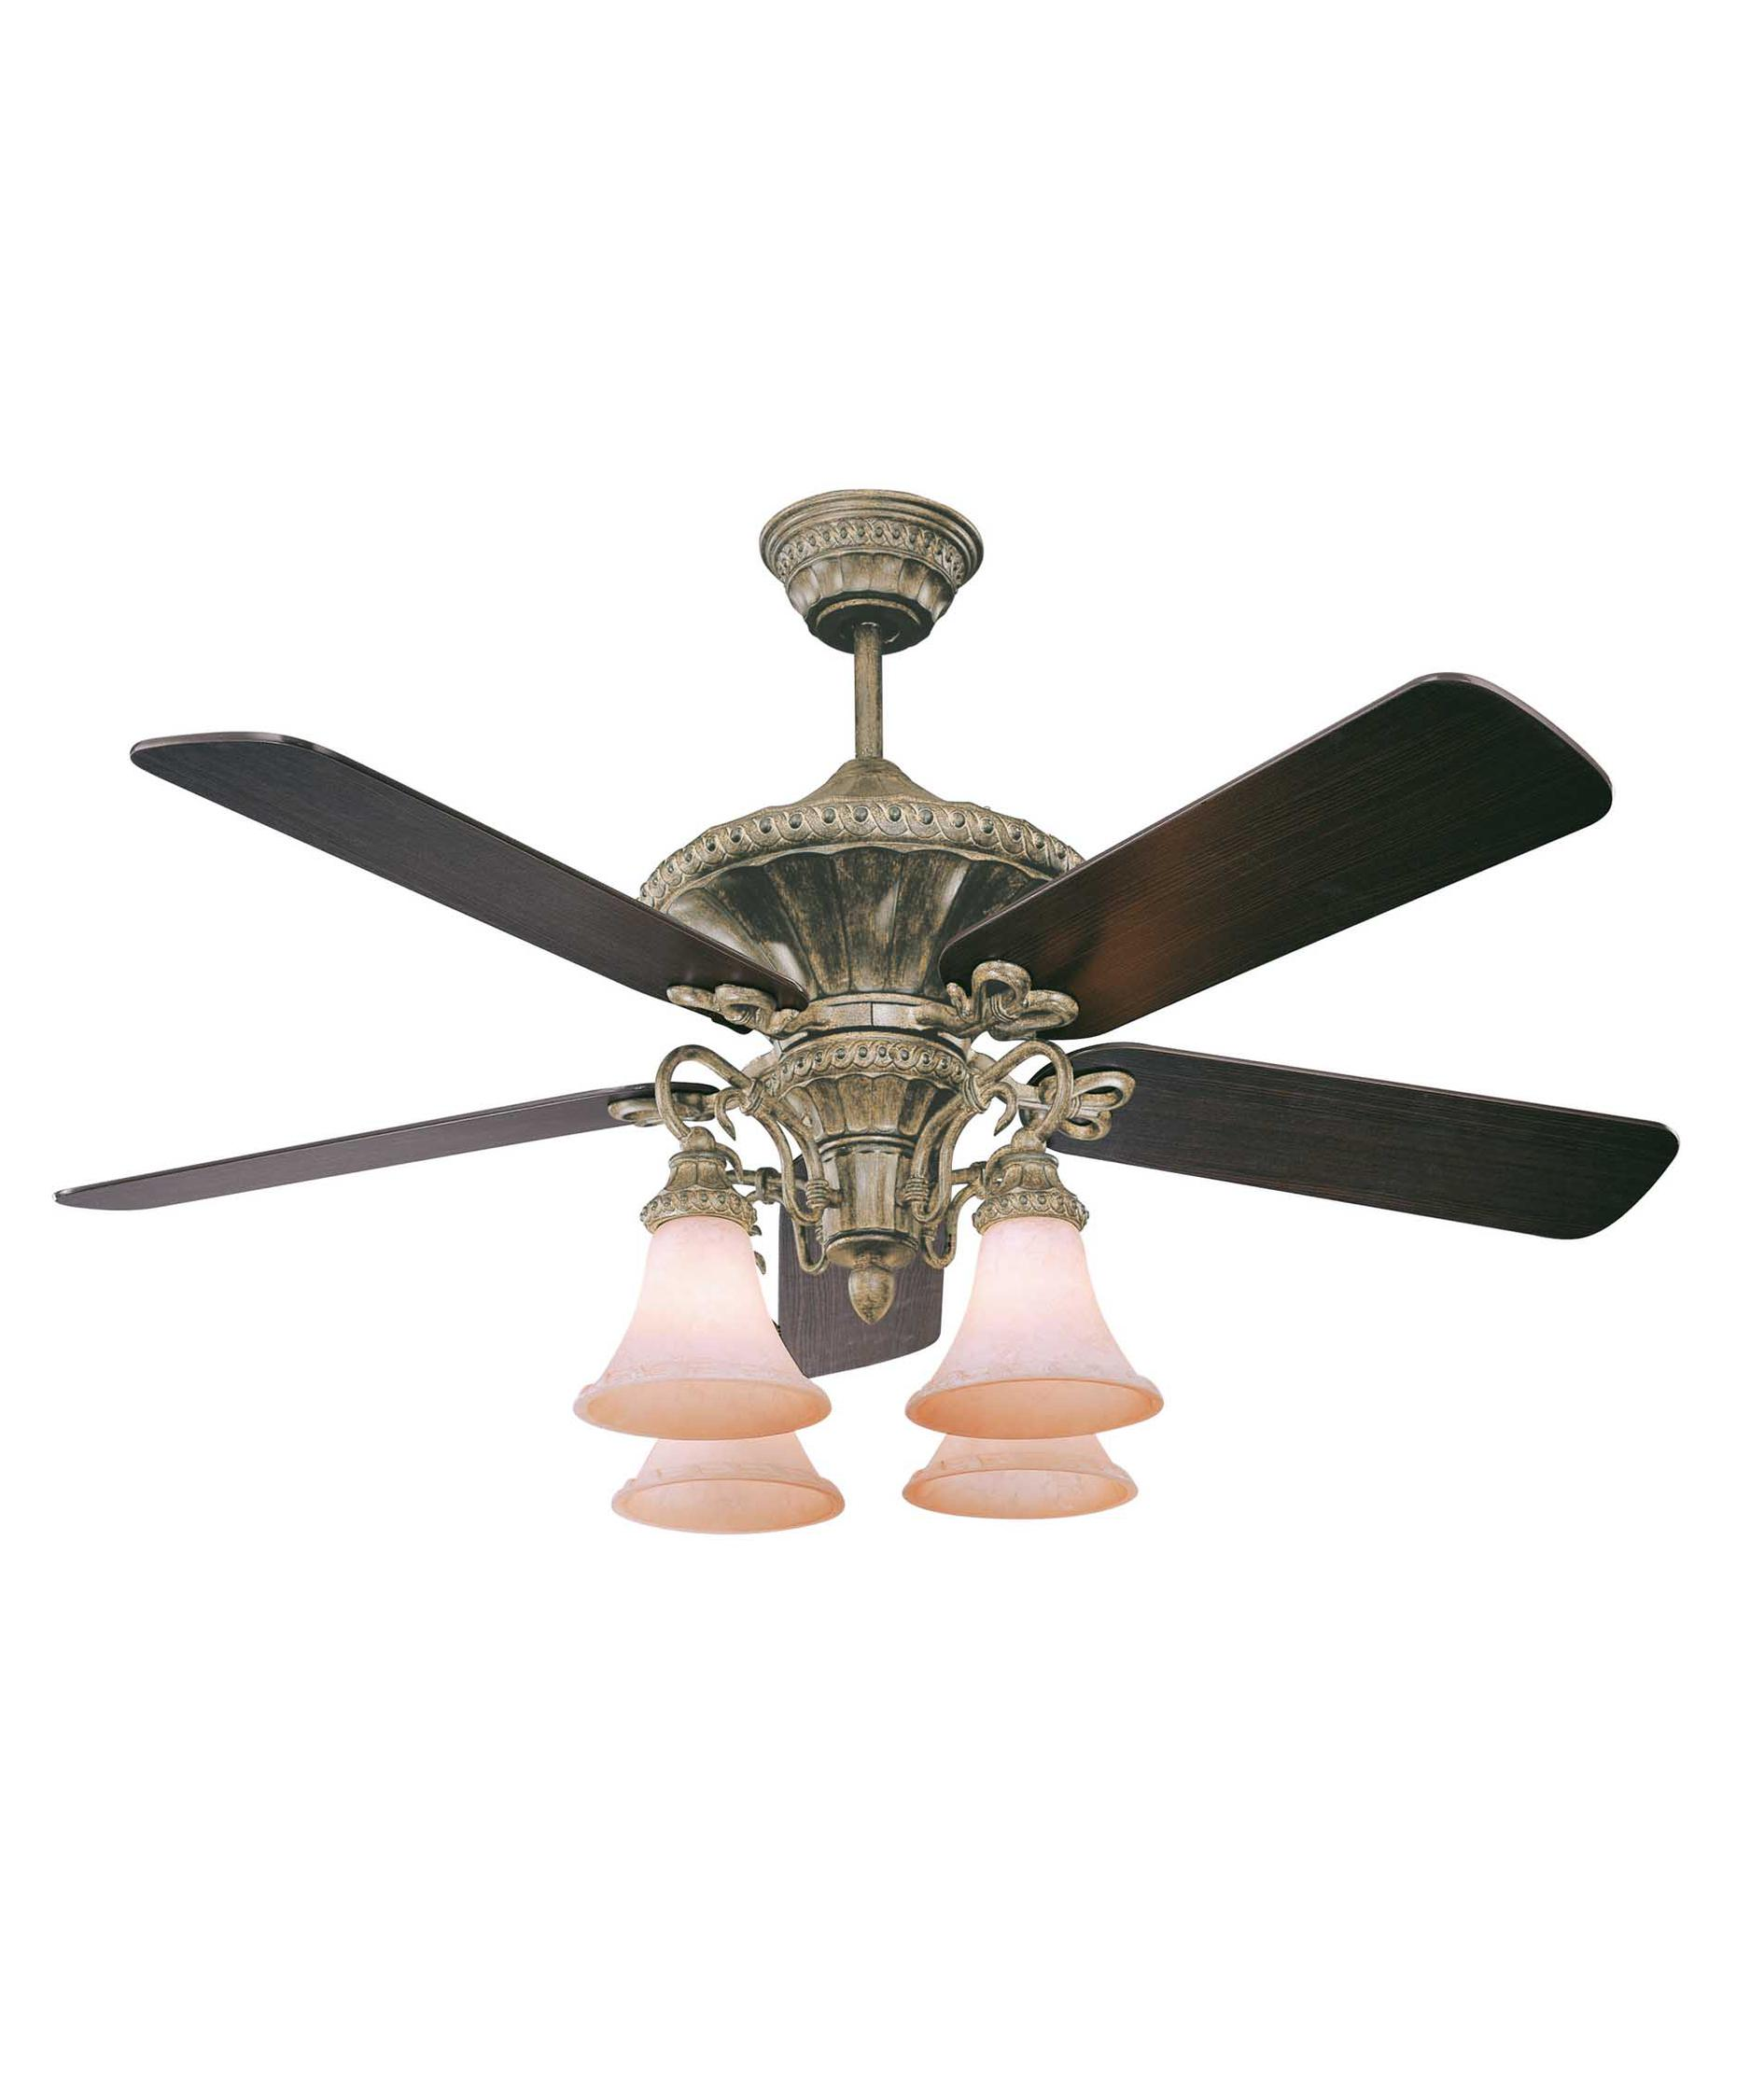 Murray Feiss Ceiling Fan Light Kit: Savoy House Villamoura 52 Inch Ceiling Fan